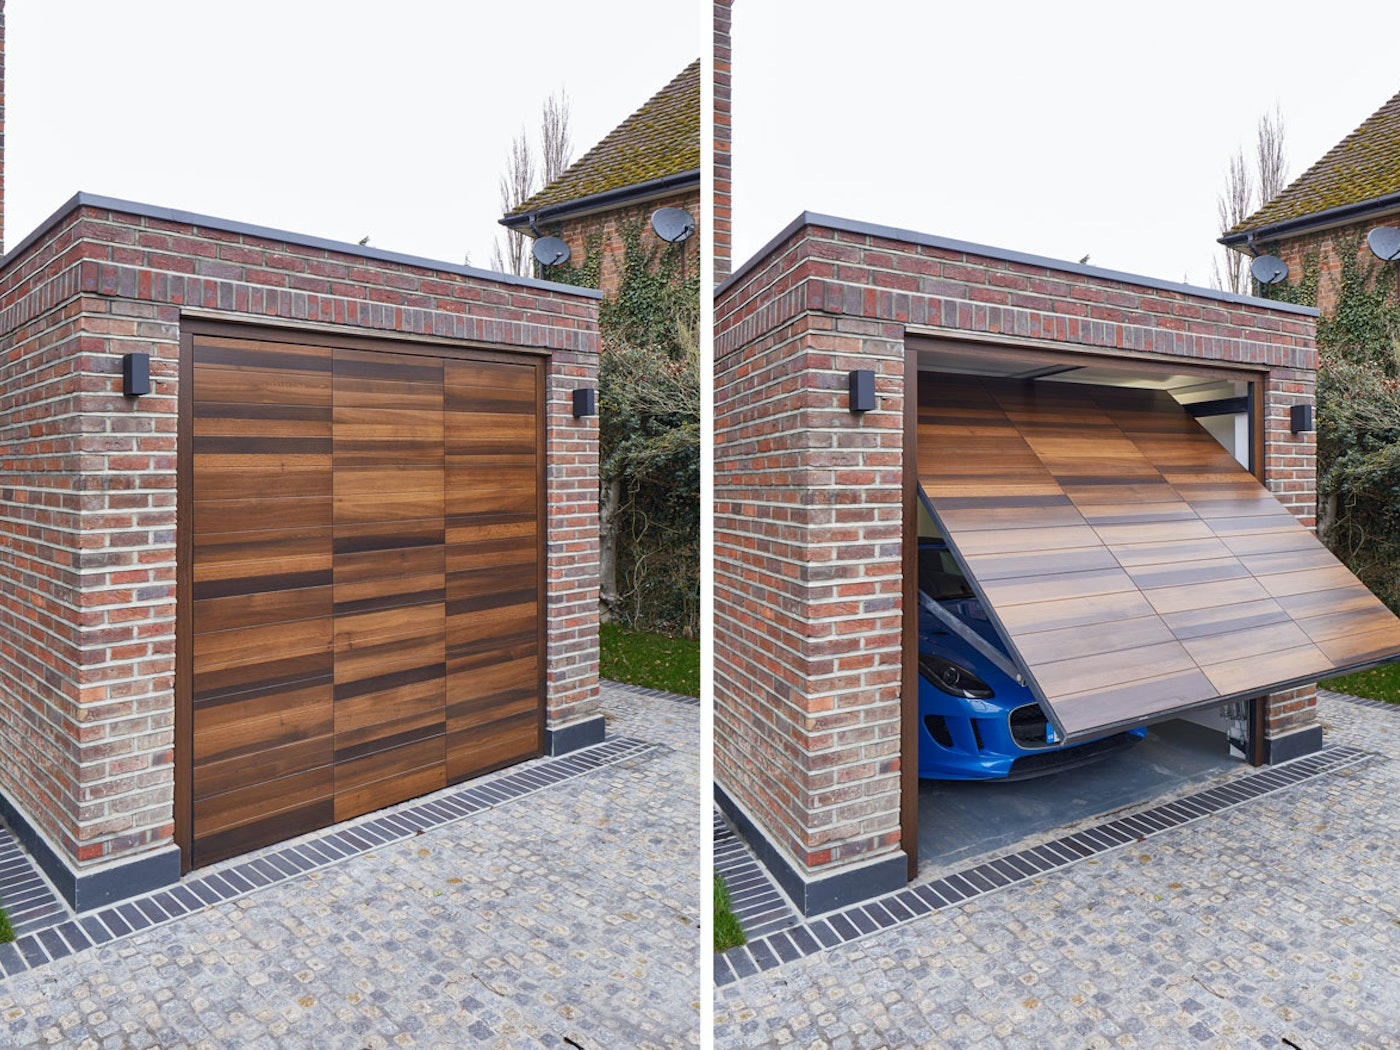 Up and over garage doors   Open & closed views   Urban Front